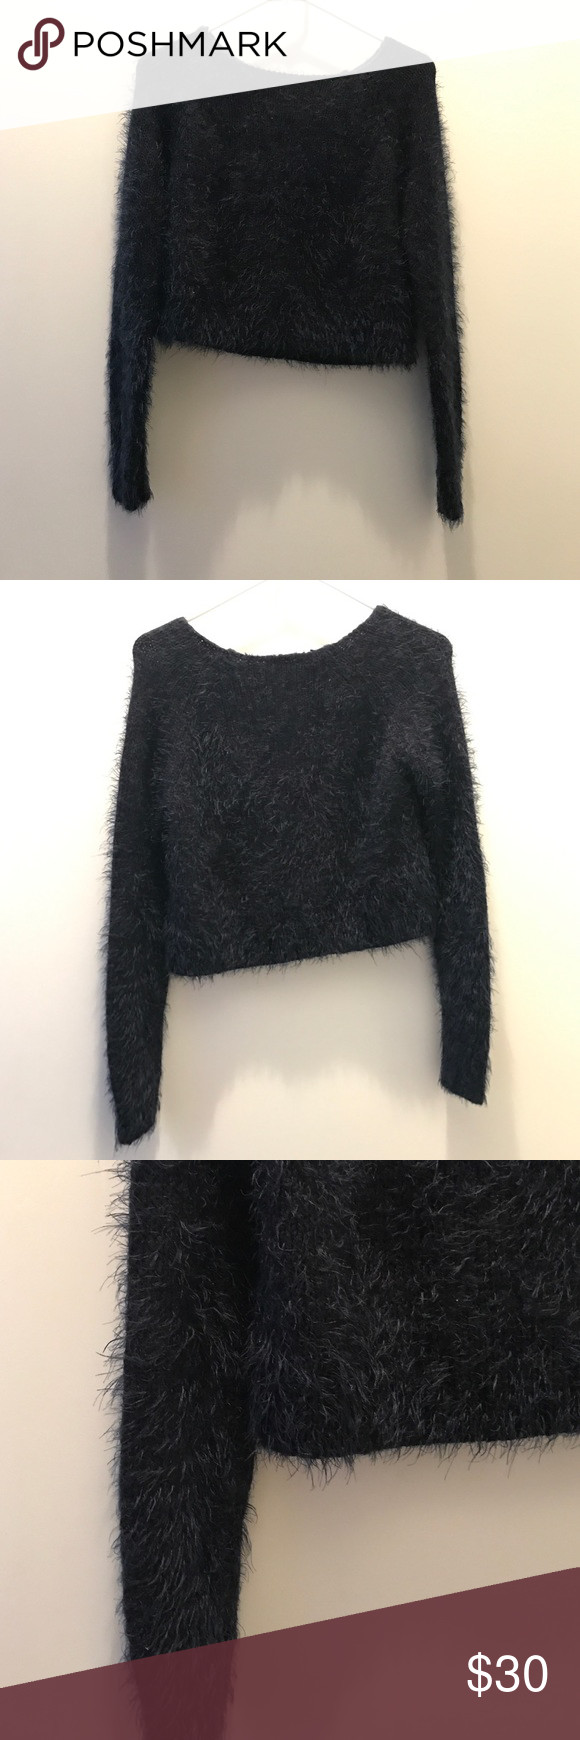 e5e580d0a41cc Brandy Melville Fuzzy Dark Blue Crop Sweater brandy Melville fuzzy Dark  Navy Blue crop top Sweater size Small Brandy Melville Tops Crop Tops